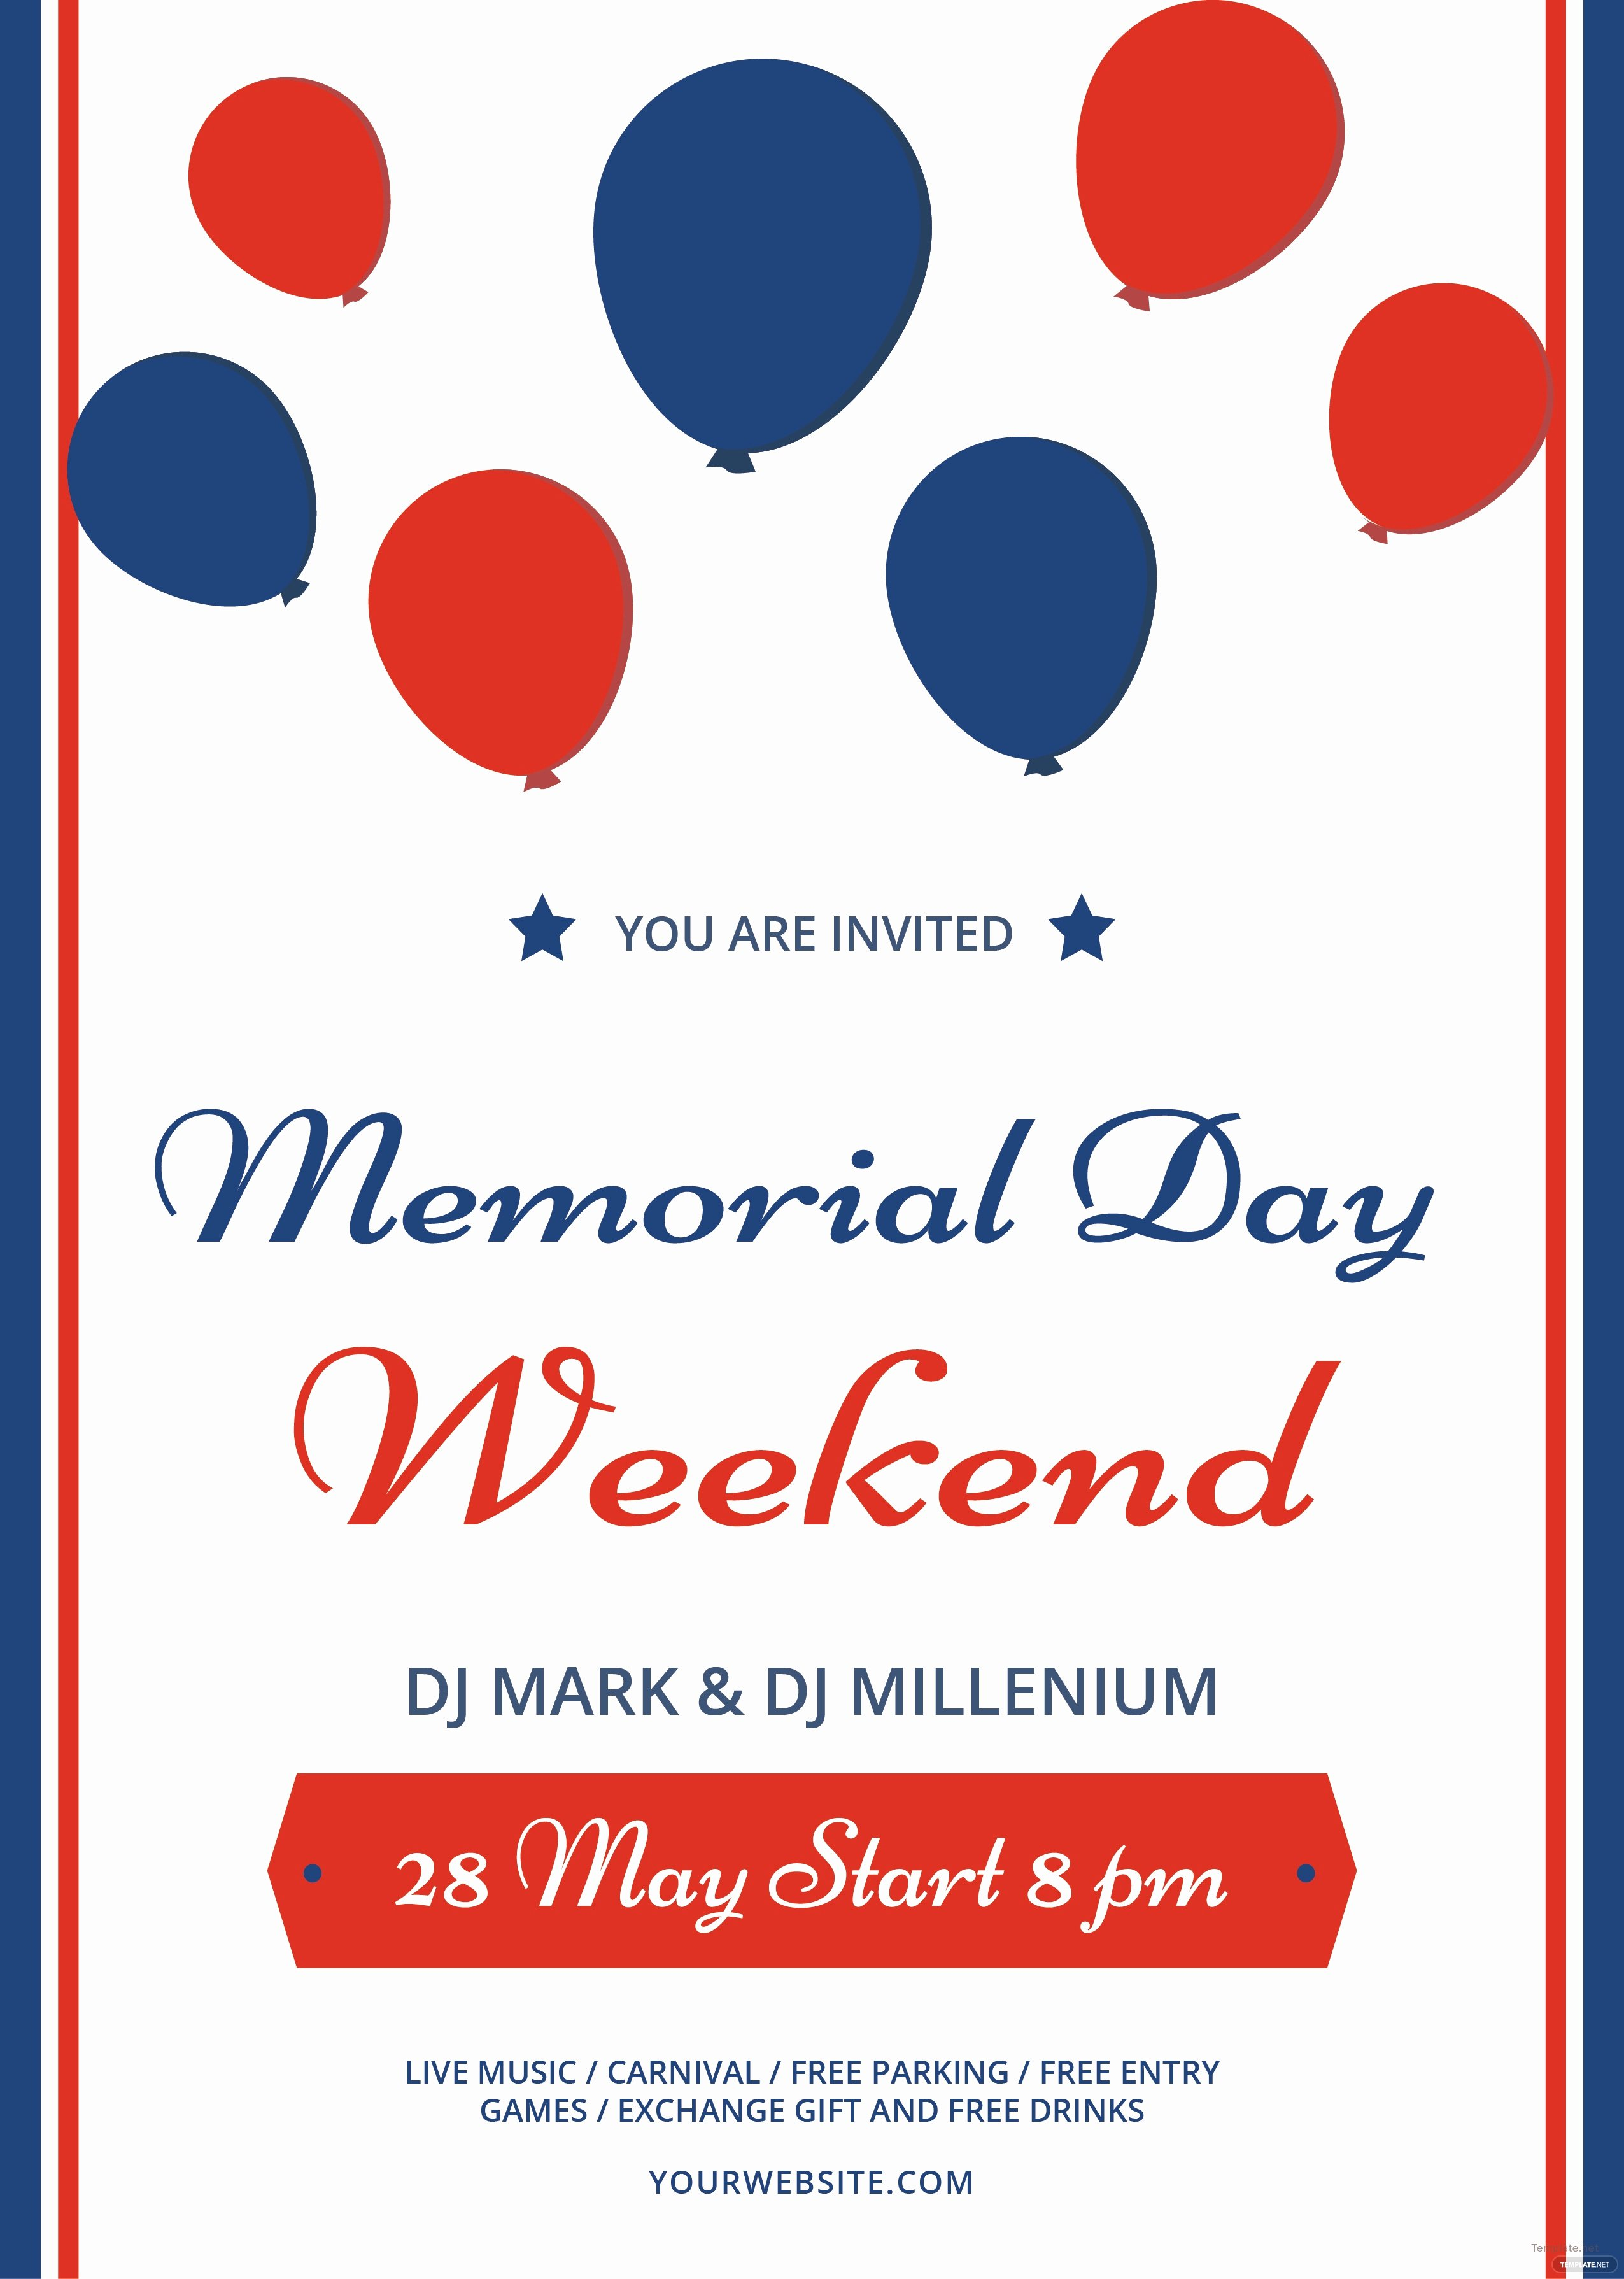 Memorial Day Flyer Template Free Unique Free Memorial Day Weekend Flyer Template In Adobe Illustrator